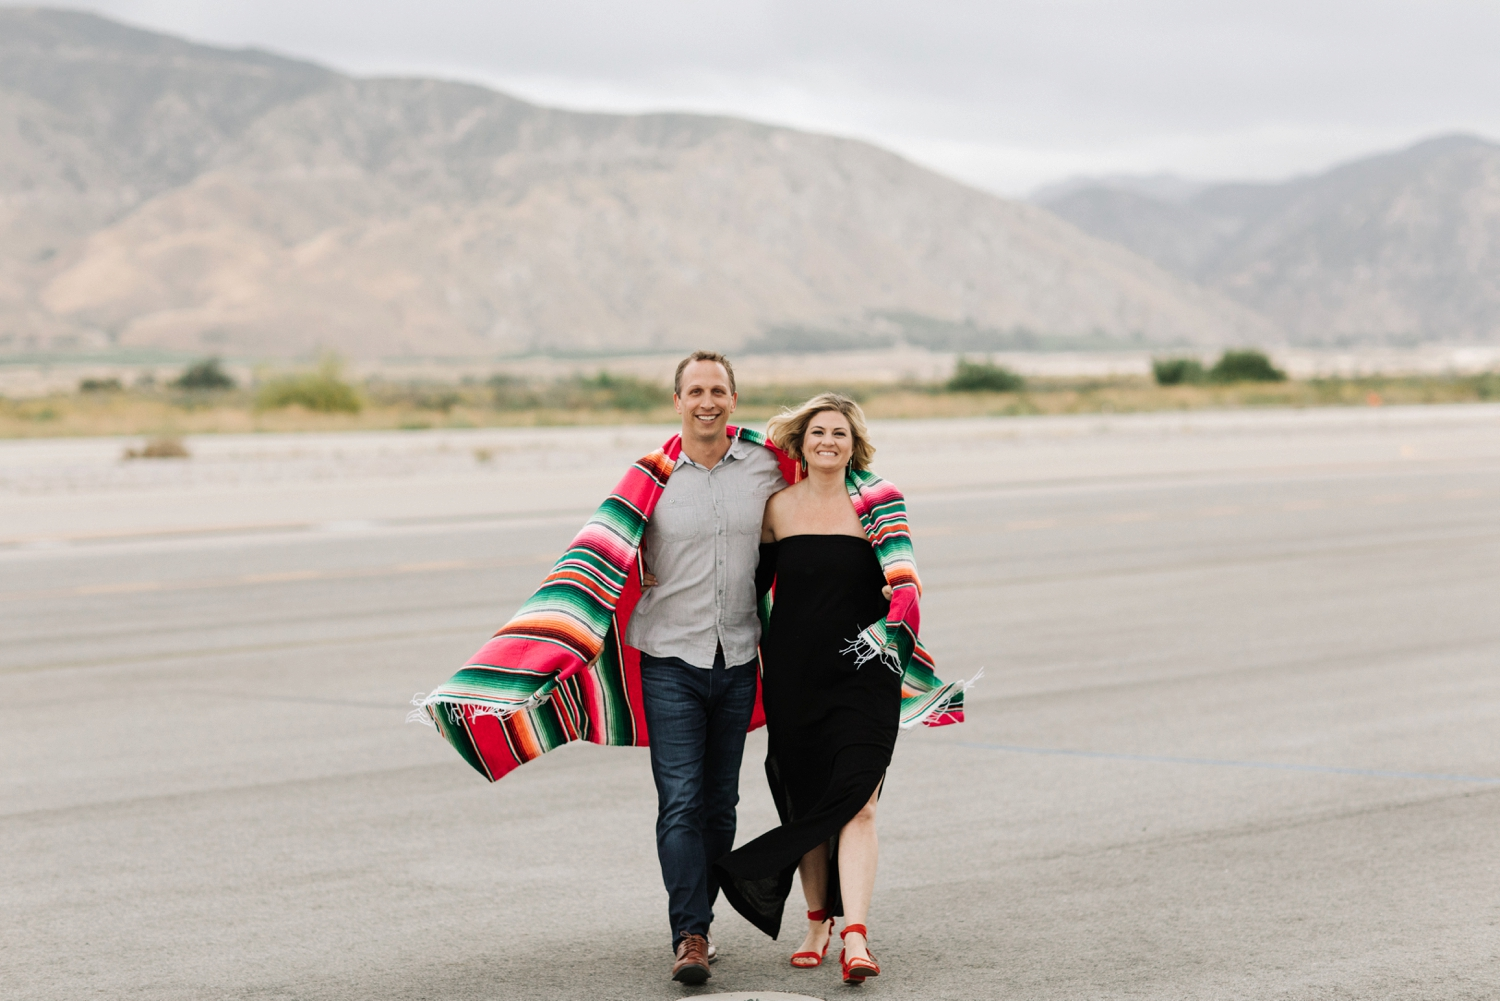 airport-redlands-california-engagement-photo-01.JPG